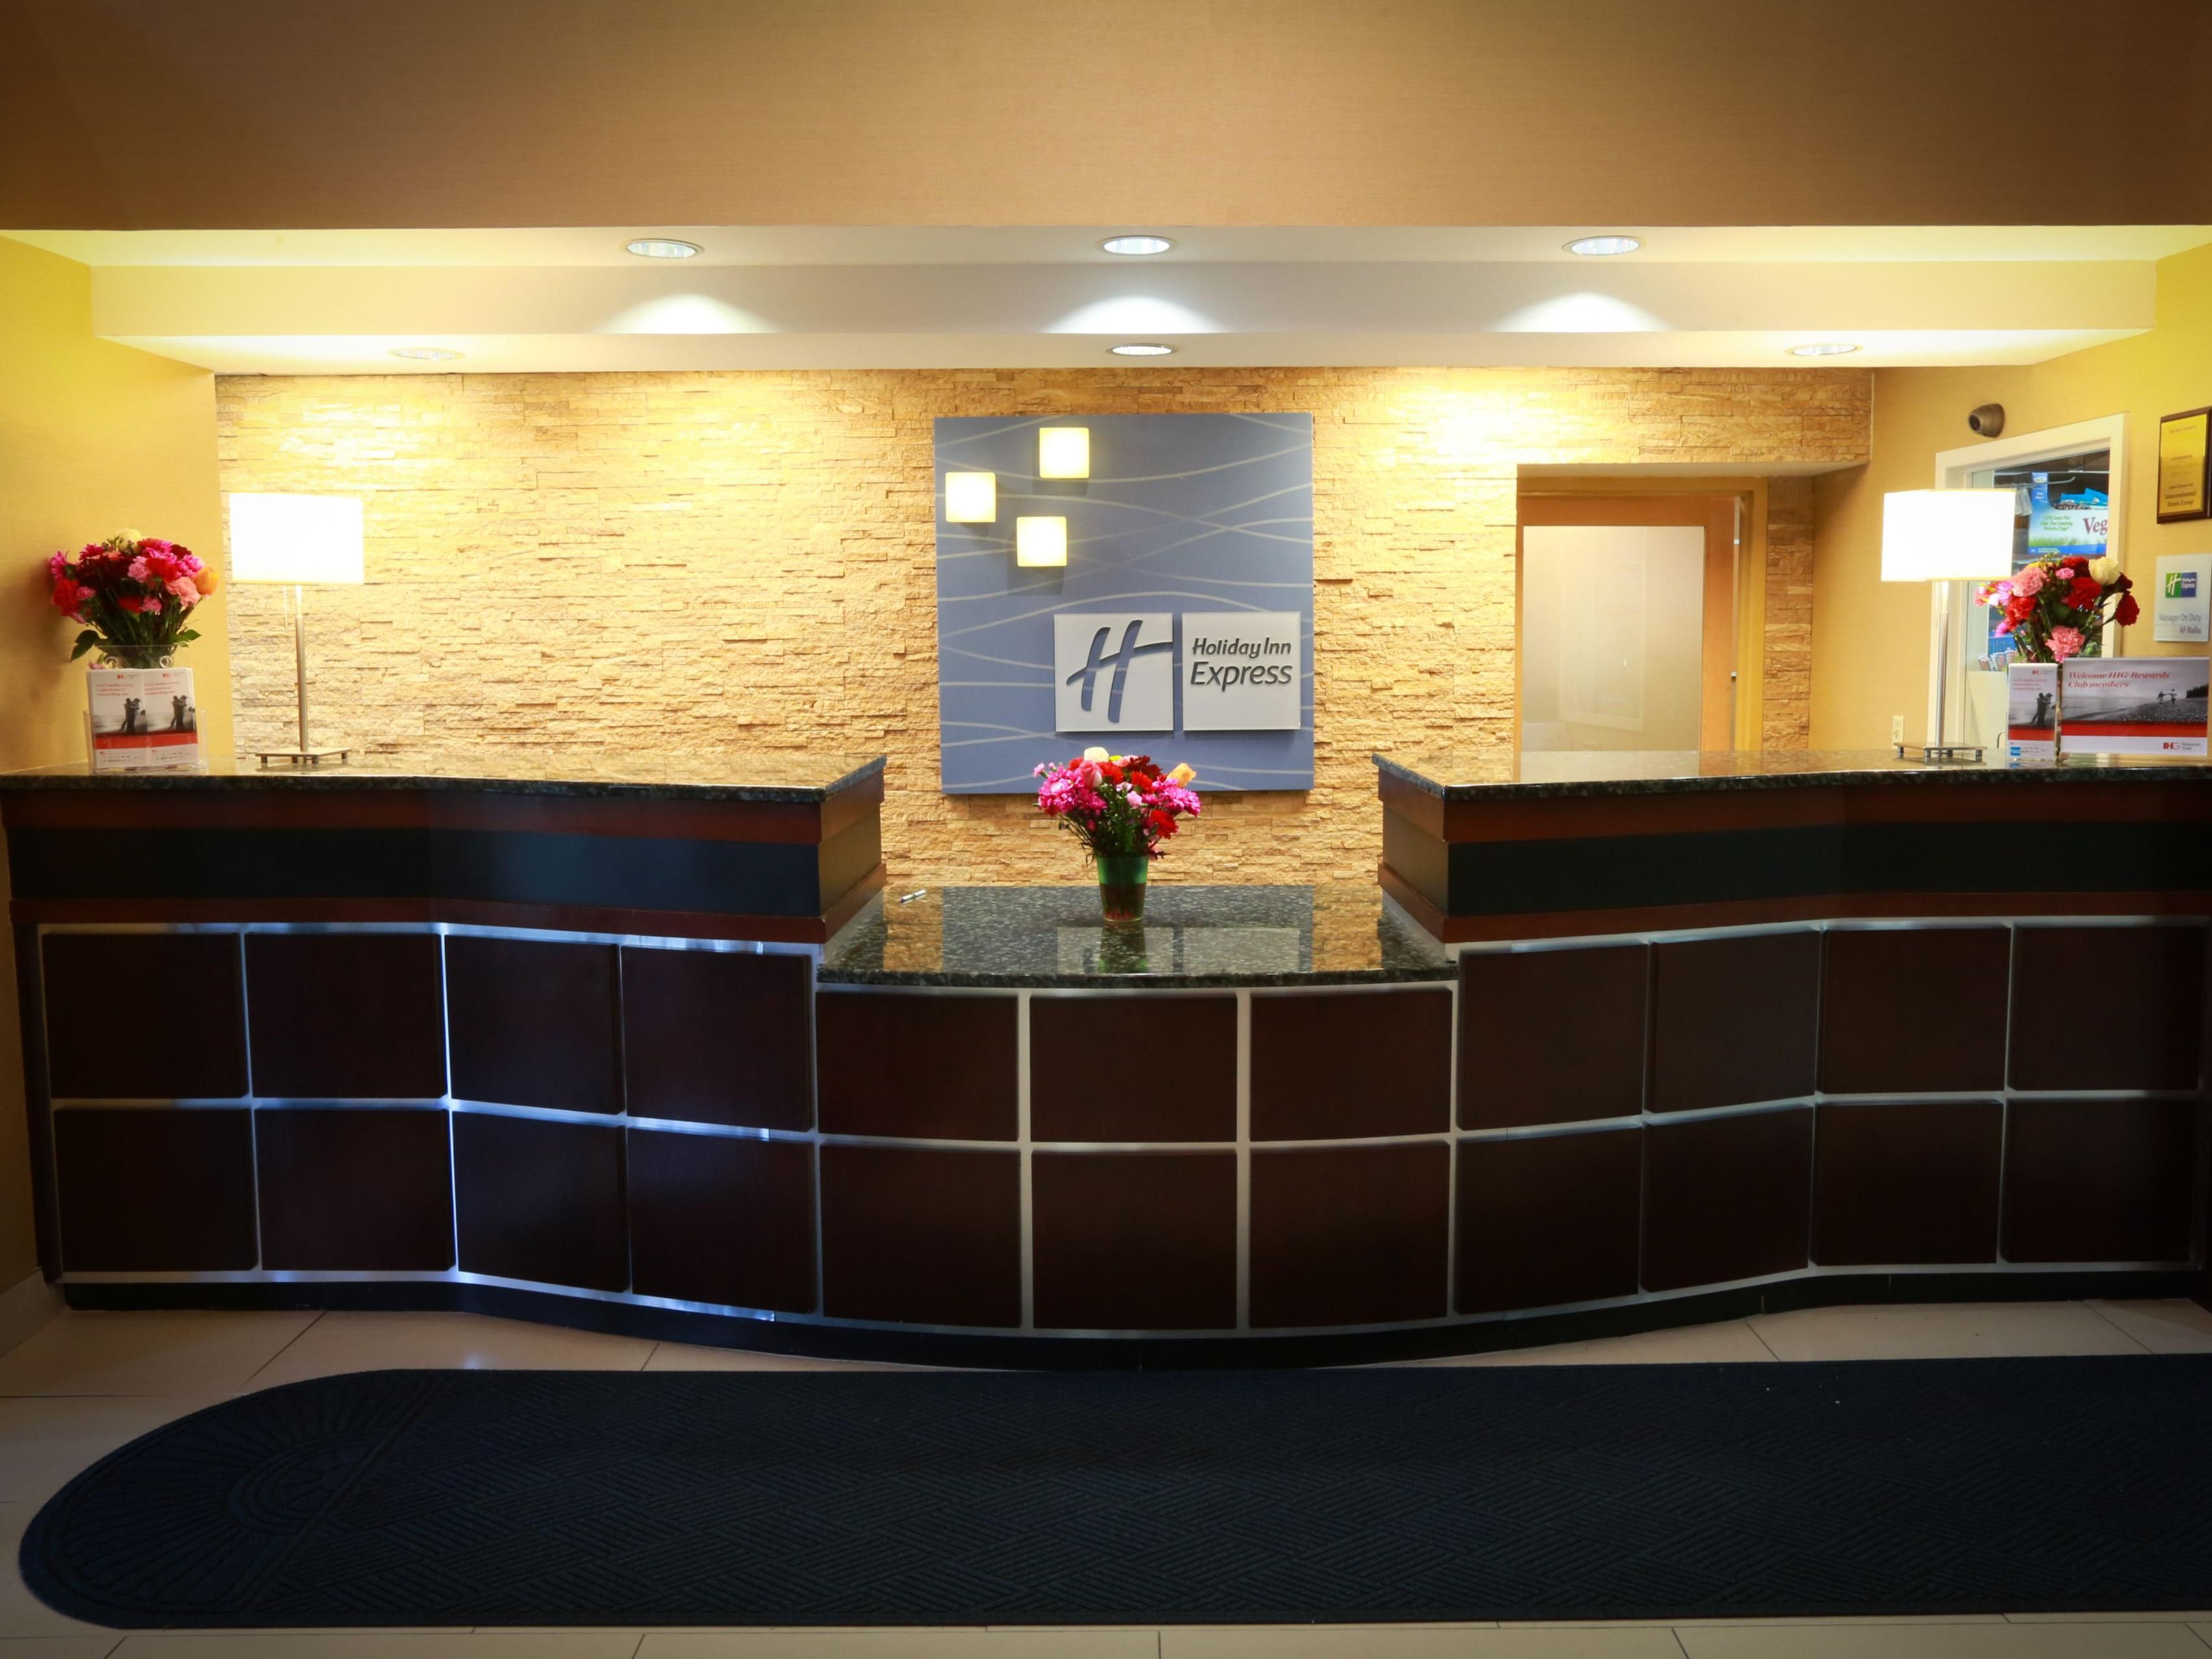 The Front Desk of the Hotel Lobby.